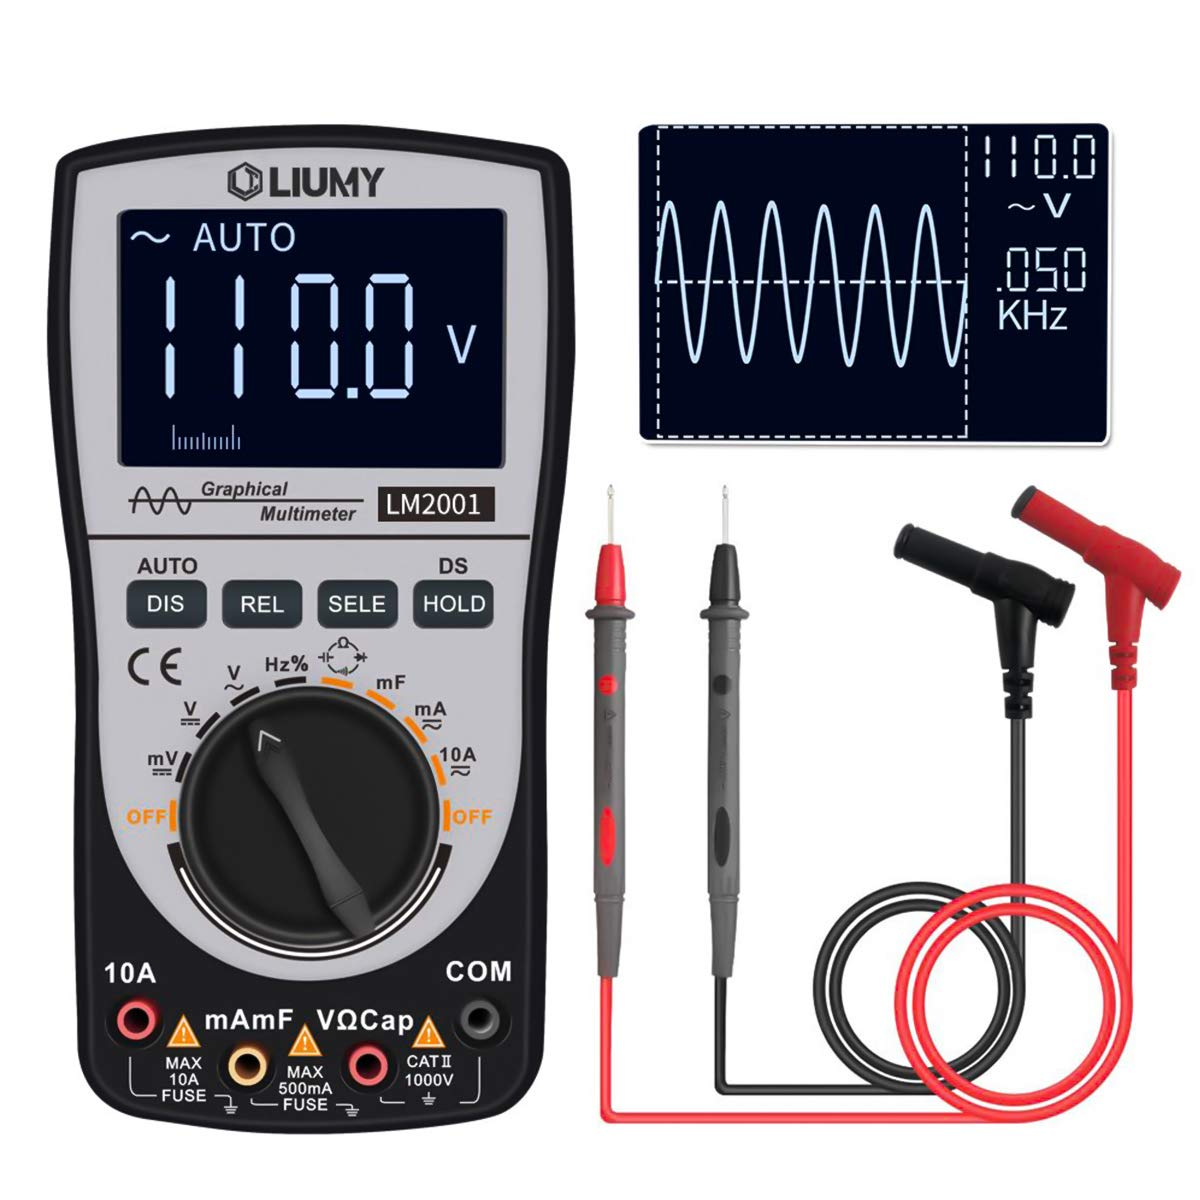 Oscilloscope Multimeter 2 0 Update,LIUMY Professional LED Handheld  Oscilloscope Multimeter with 200ksps A/D Automatic Waveform Capture  Function,DC/AC